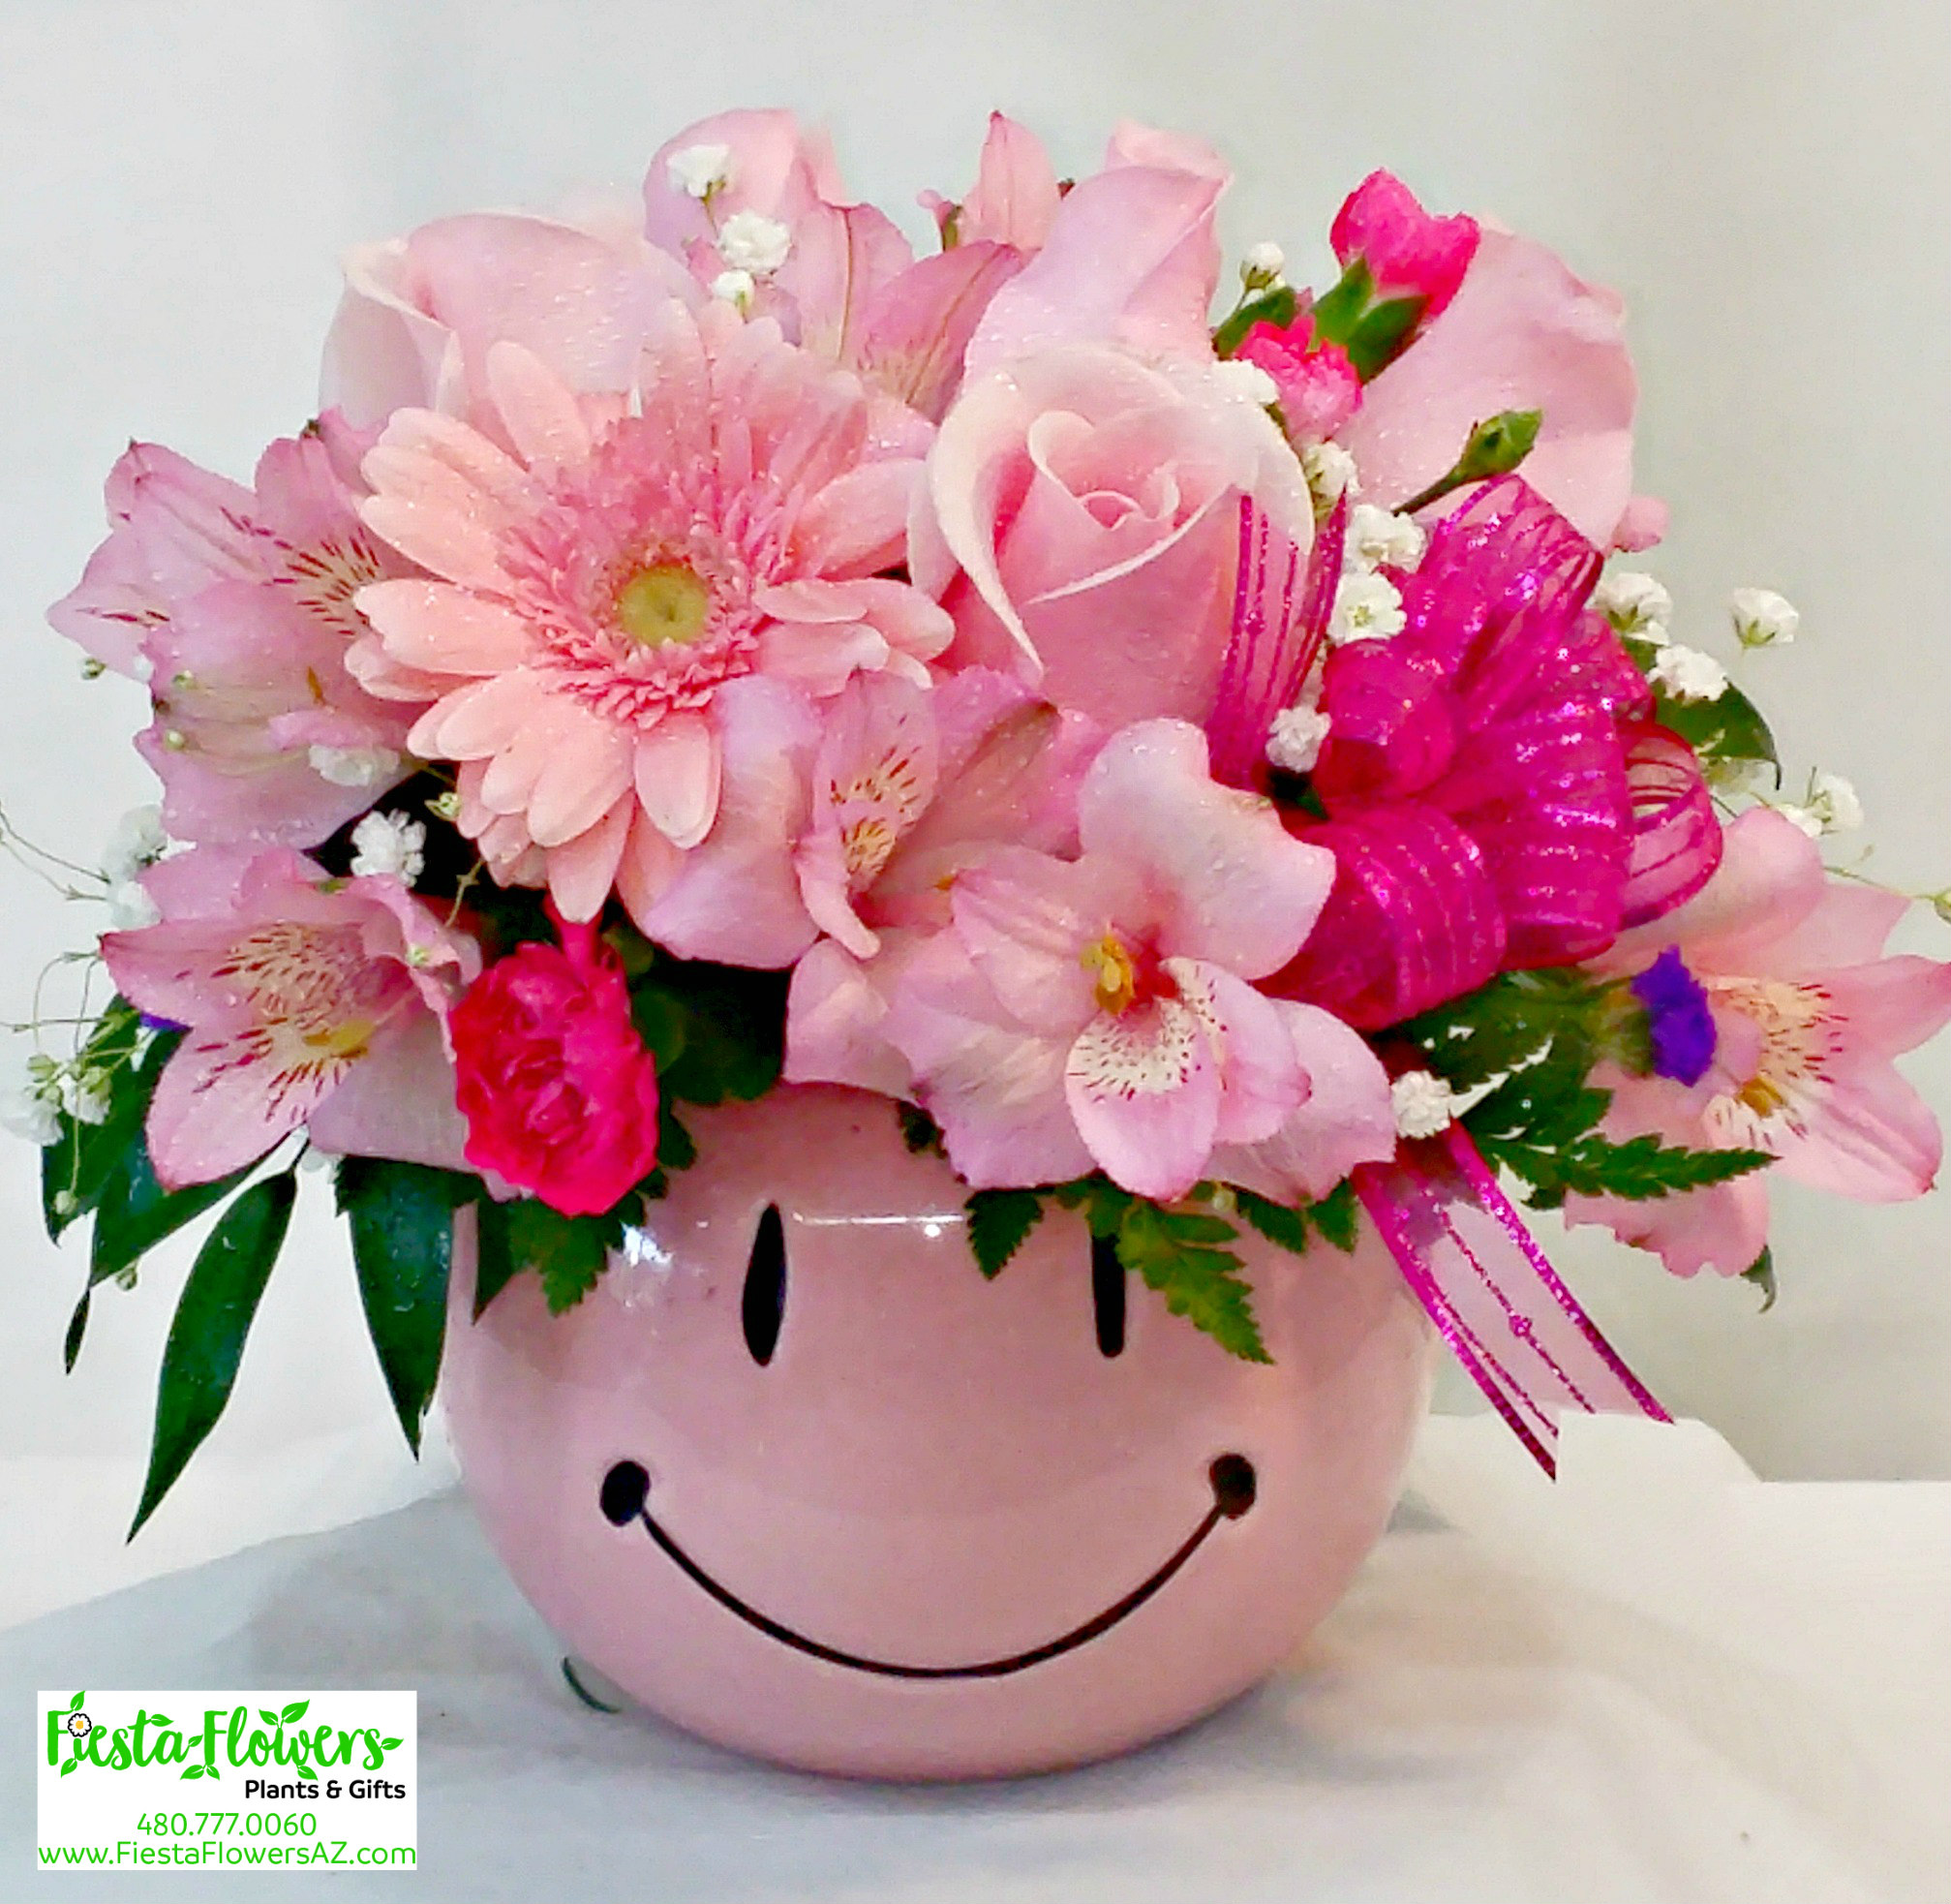 Princess Pink Smiley Same Day Delivery Fiesta Flowers Plants